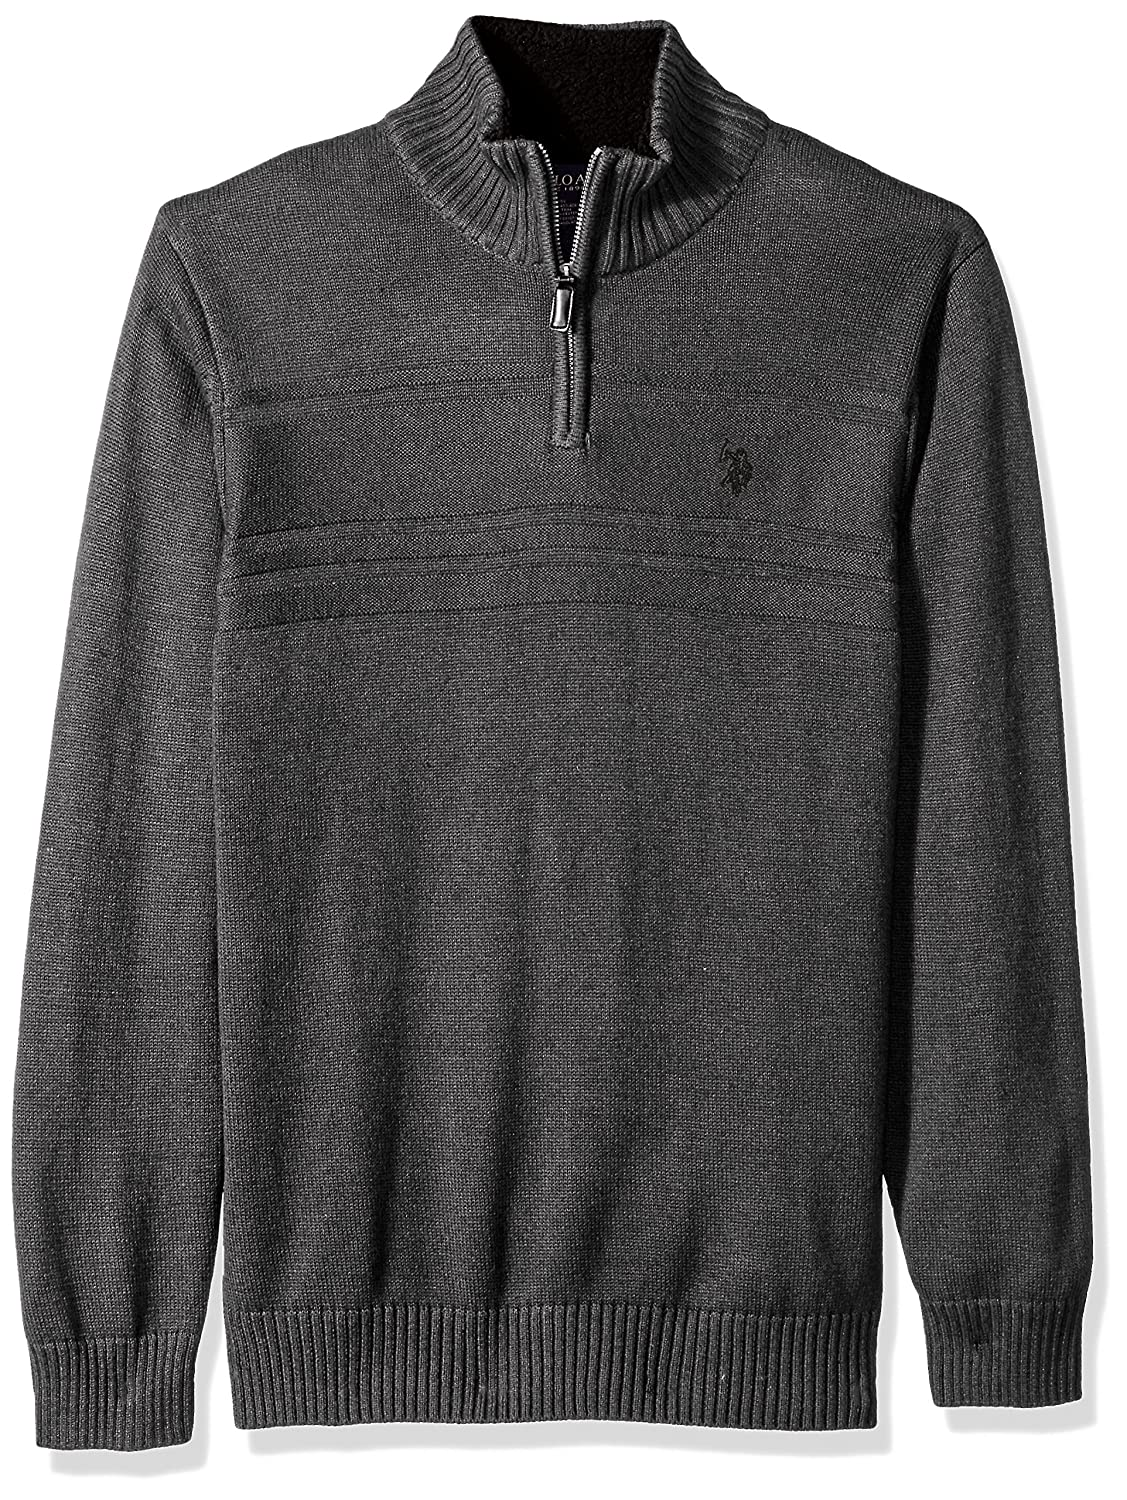 U.S. Polo Assn. Men's Solid Texture Chest Stripe 1/4 Sweater, ACUF7S5790